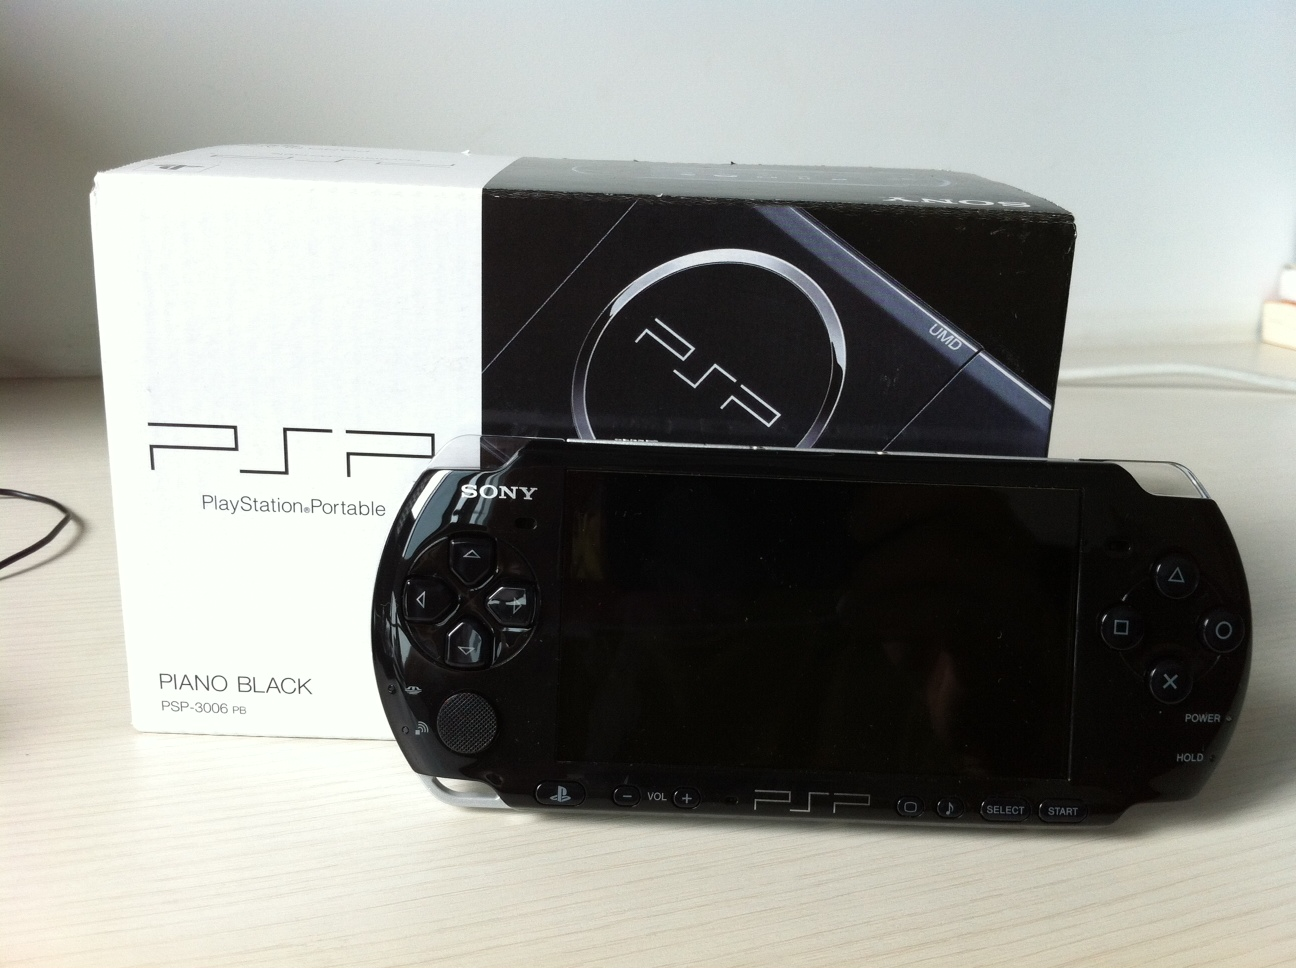 FOR SALE: Sony PSP Value Pack 3006 - Piano Black